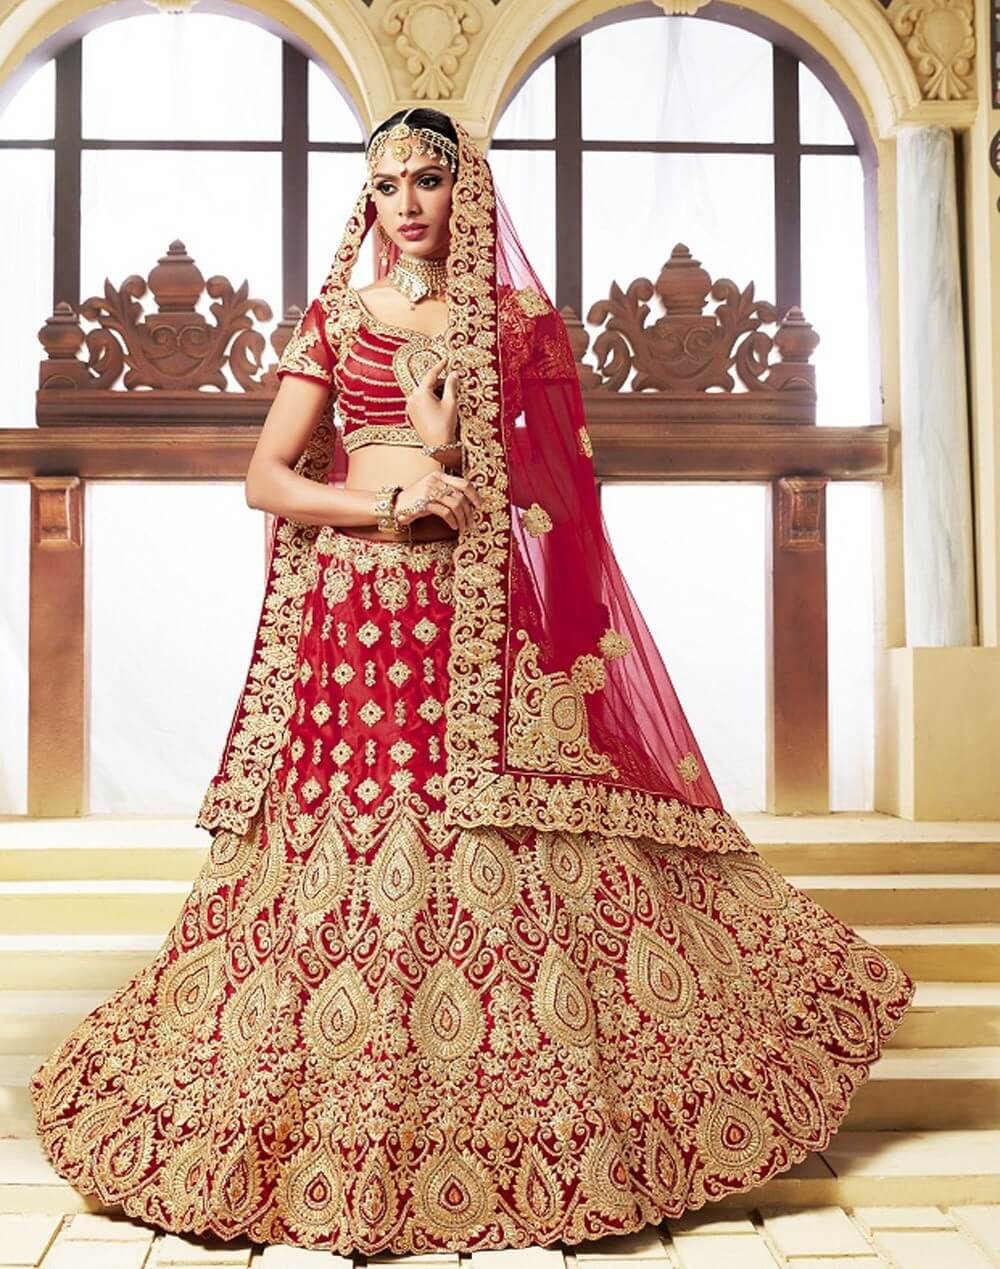 20 Fabulous Wedding Lehenga's To Inspire You